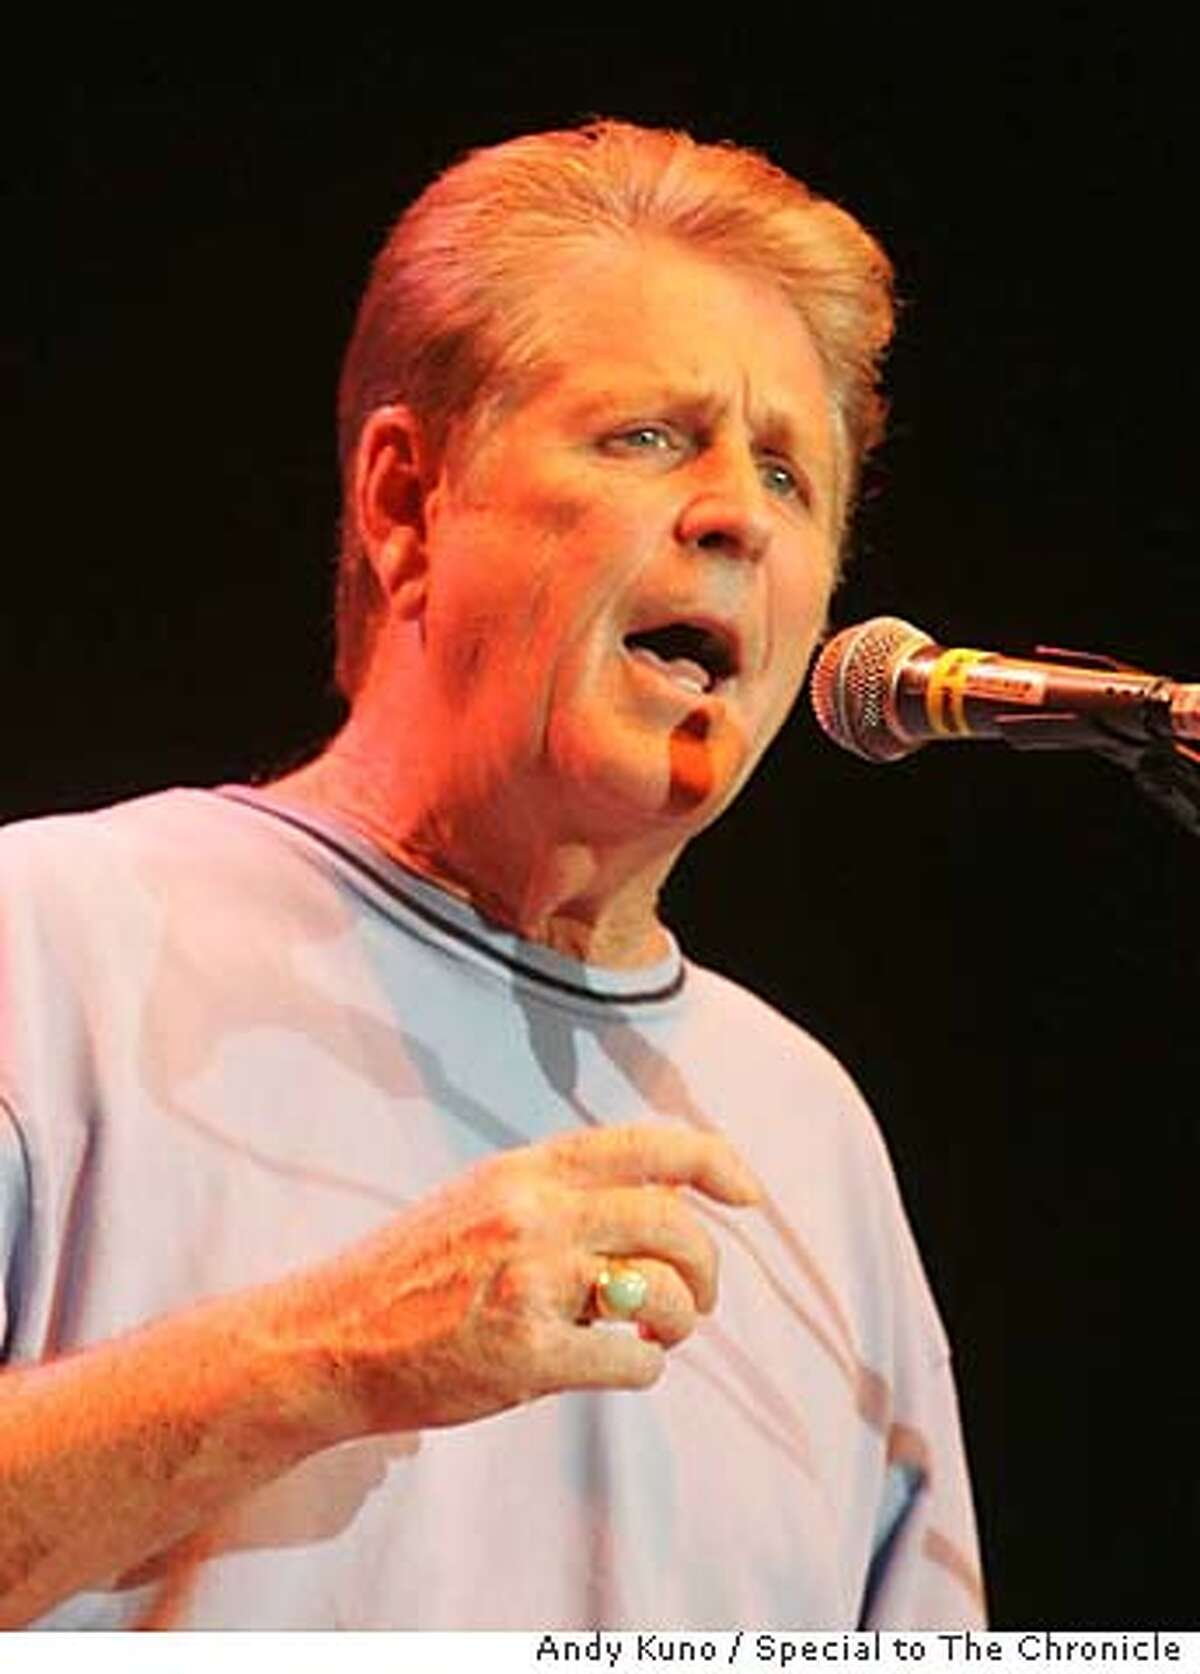 Brian Wilson sings at the Bridge School Benefit Concert at the Shoreline Amphitheatre in Mountain View, Calif. Saturday October 21, 2006. By ANDY KUNO/SPECIAL TO THE CHRONICLE